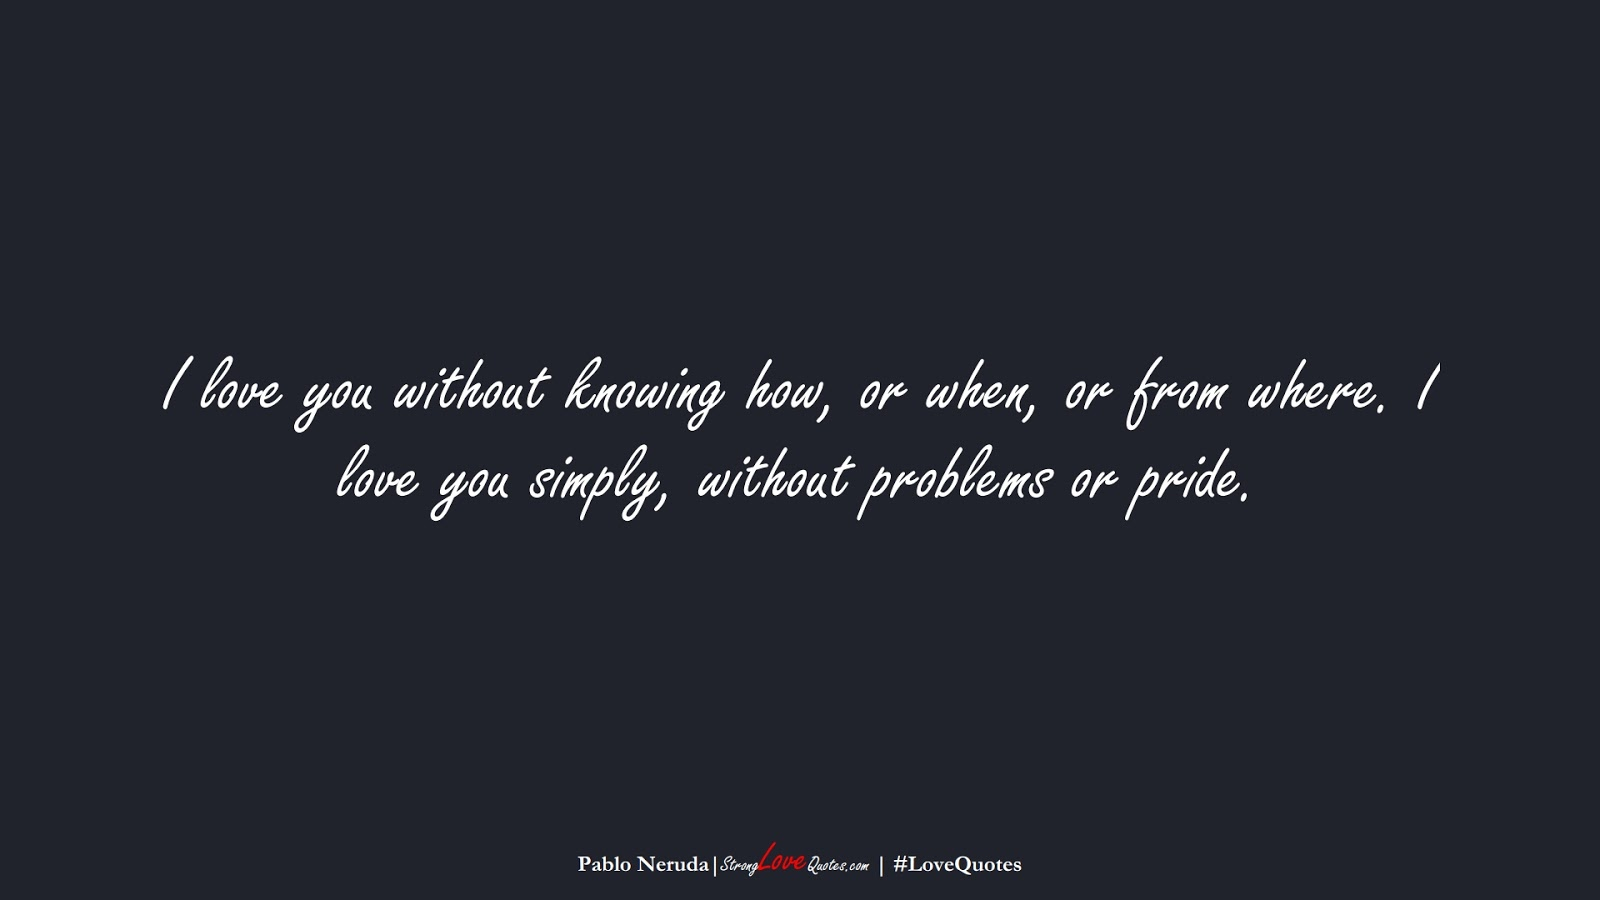 I love you without knowing how, or when, or from where. I love you simply, without problems or pride. (Pablo Neruda);  #LoveQuotes